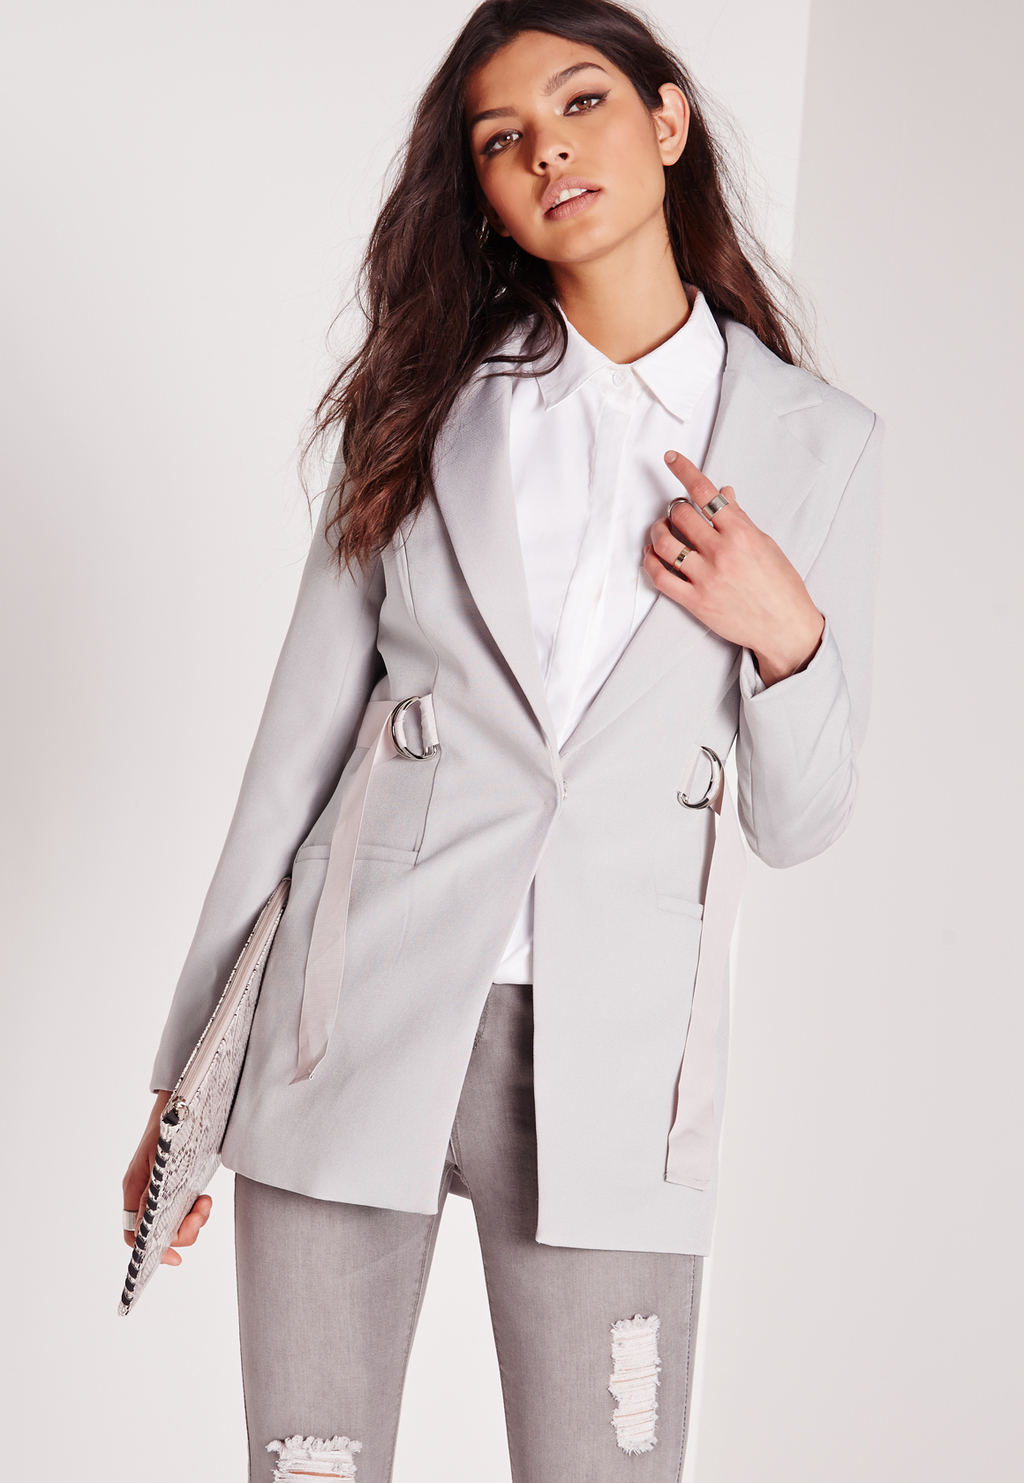 D Ring Waist Tailored Blazer Grey, Grey - pattern: plain; style: single breasted blazer; length: below the bottom; collar: standard lapel/rever collar; predominant colour: light grey; fit: tailored/fitted; fibres: polyester/polyamide - 100%; sleeve length: long sleeve; sleeve style: standard; collar break: low/open; pattern type: fabric; texture group: other - light to midweight; occasions: creative work; season: s/s 2016